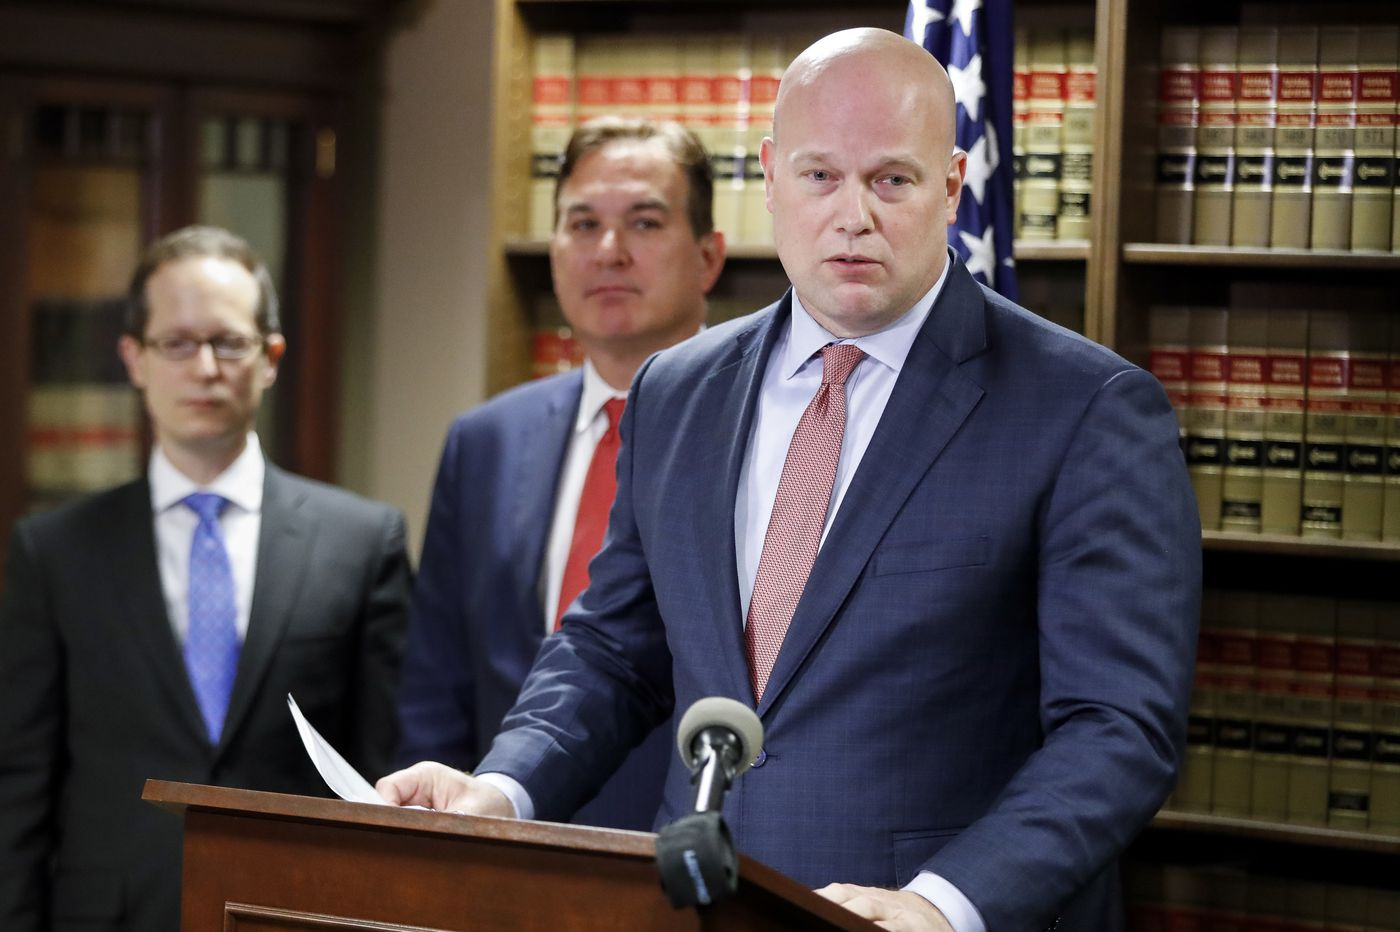 Whitaker promoted patent company for years despite early fraud complaints, records show